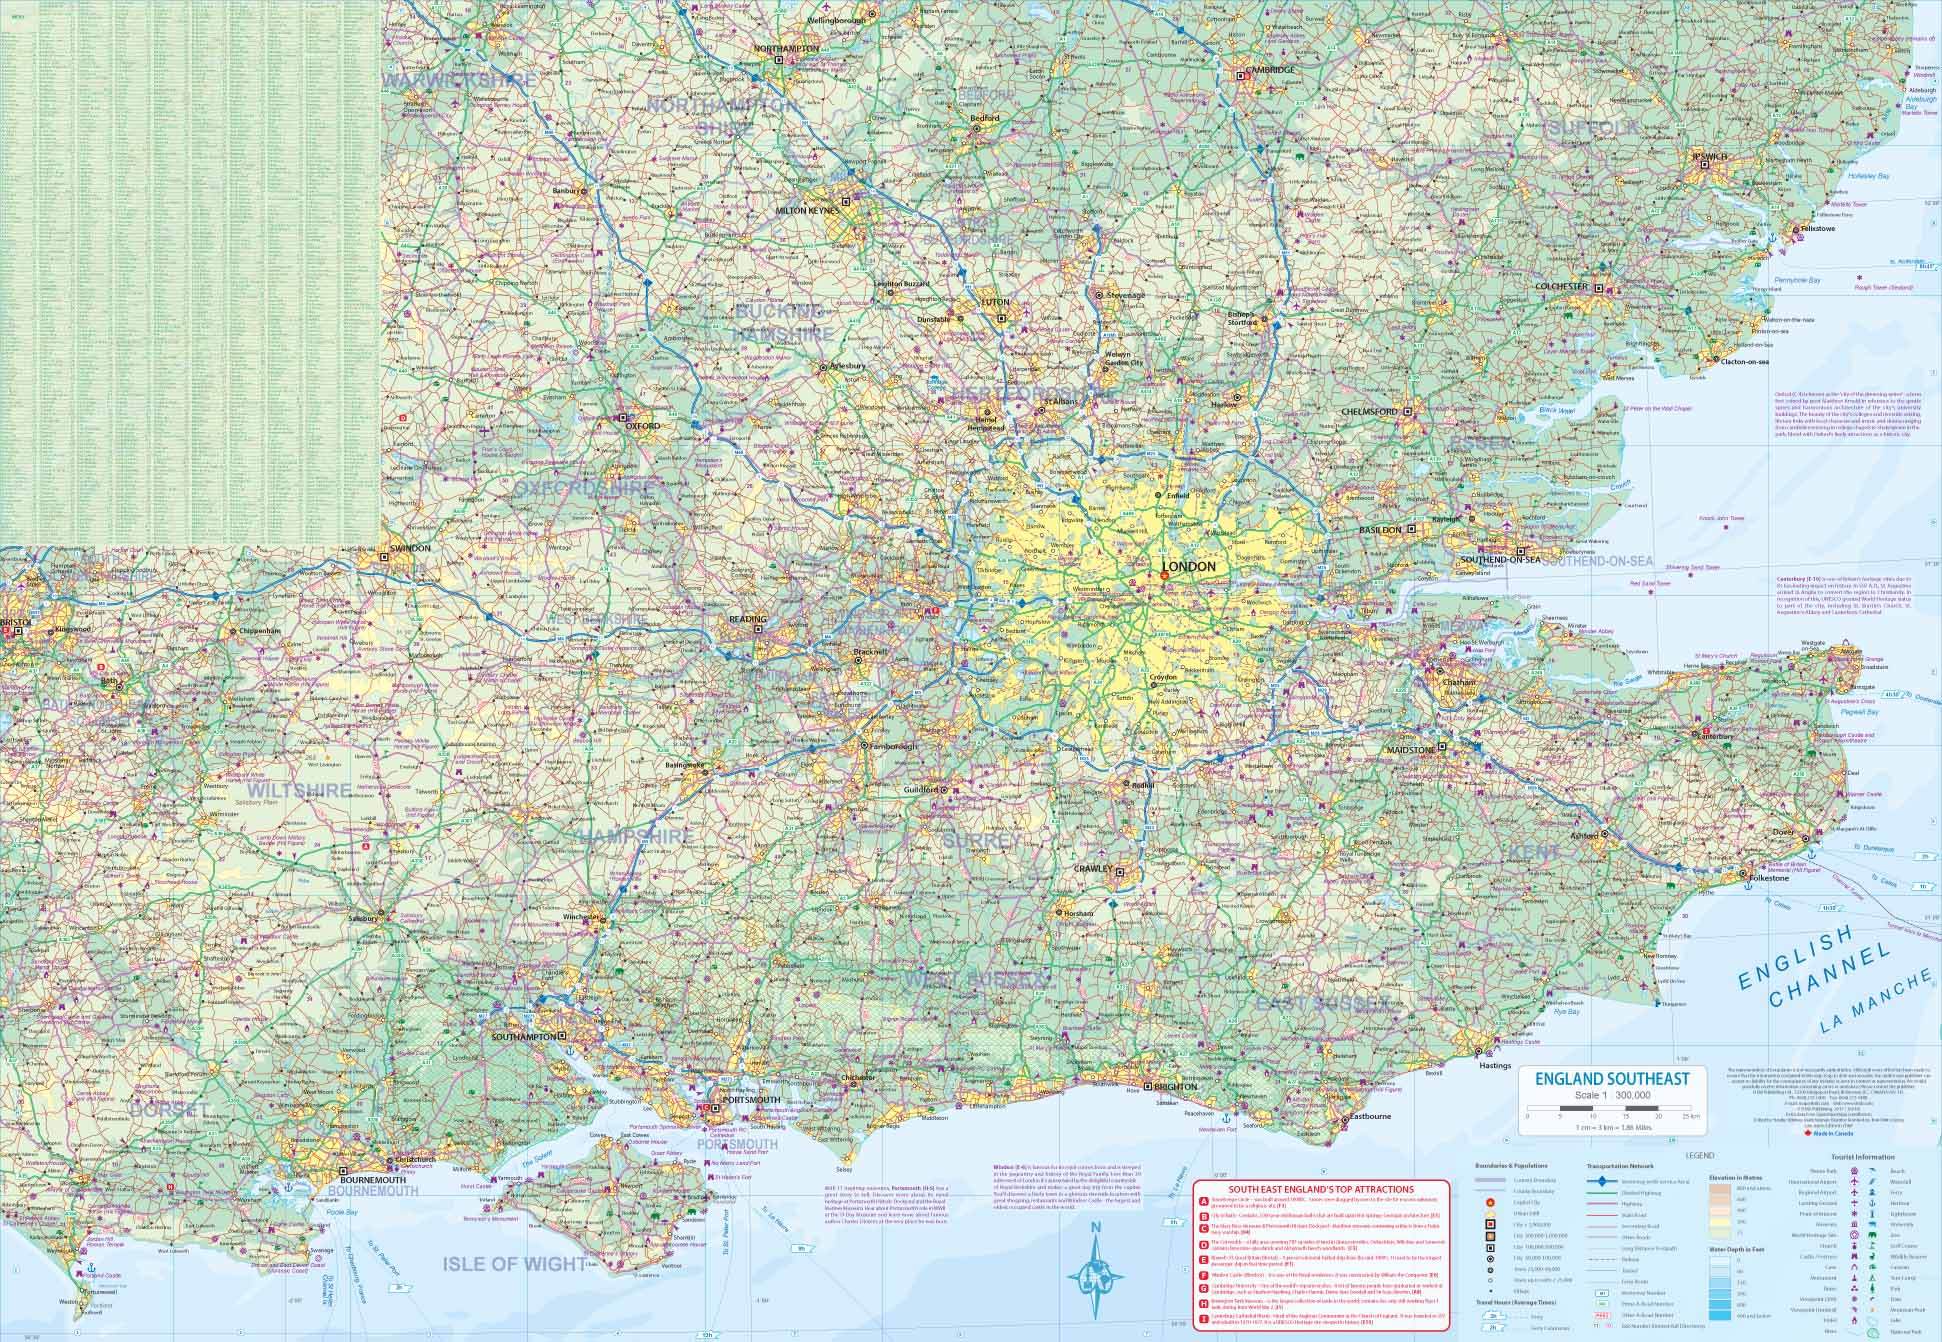 Map Of South East England.London Itm City Map